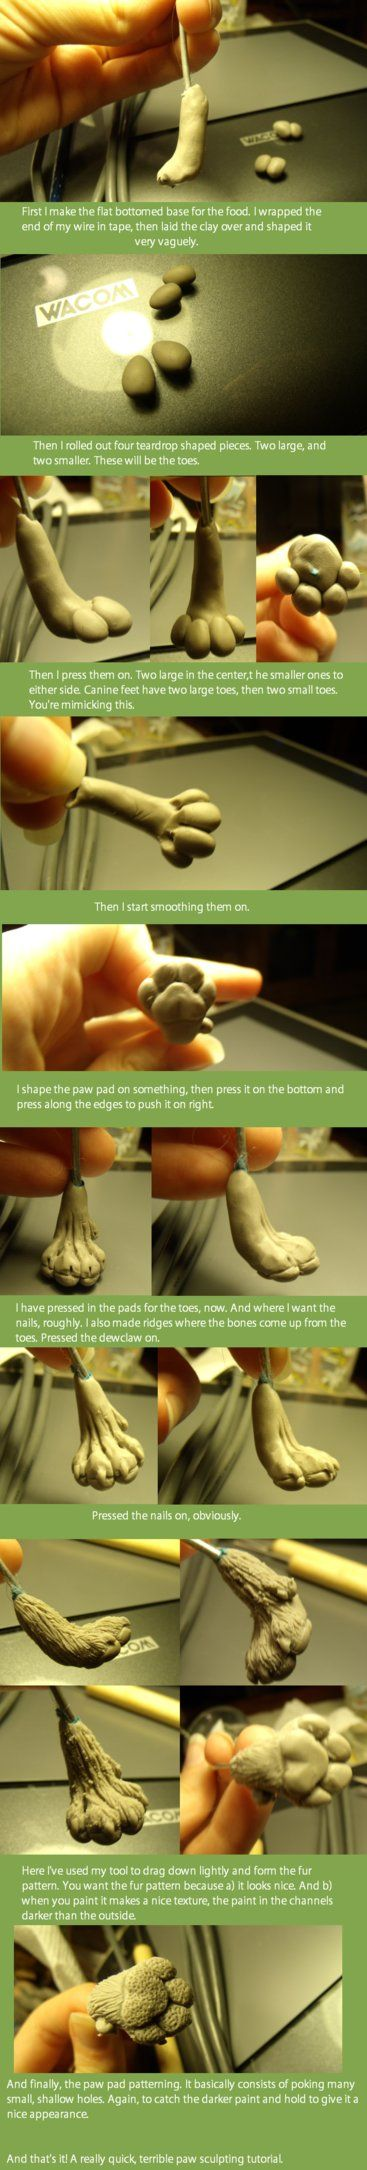 Canine Paw Tutorial. by Khrests on DeviantArt